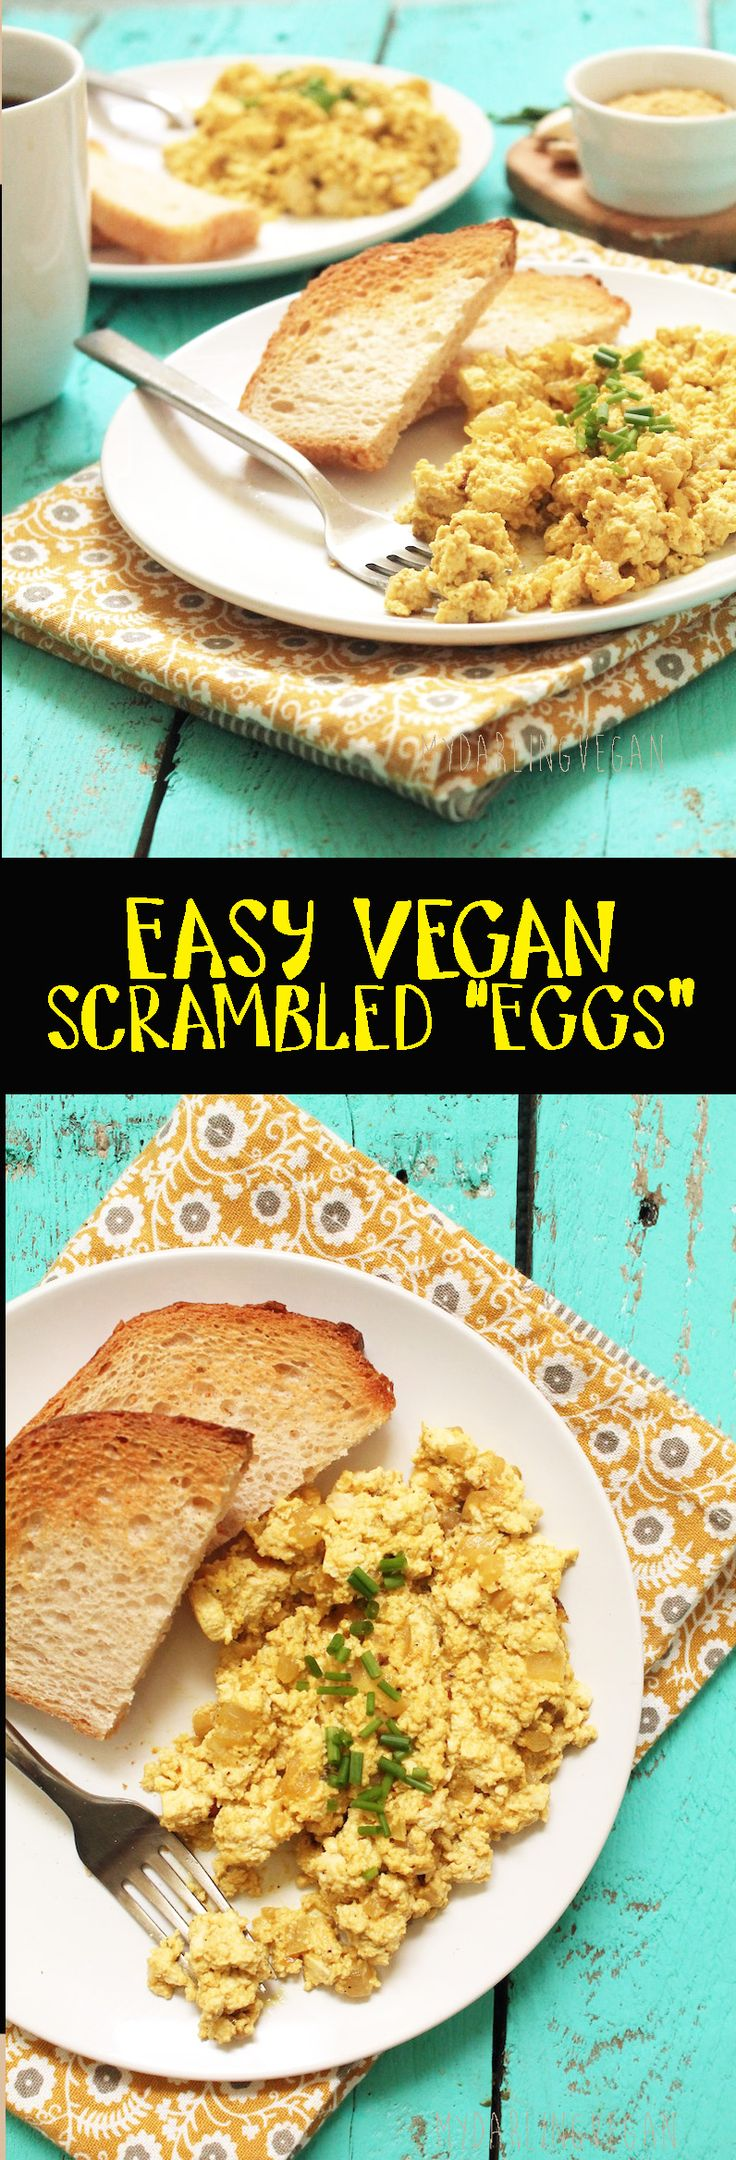 """Start your day off right with these easy vegan scrambled """"eggs"""". Click the picture for the full recipe."""